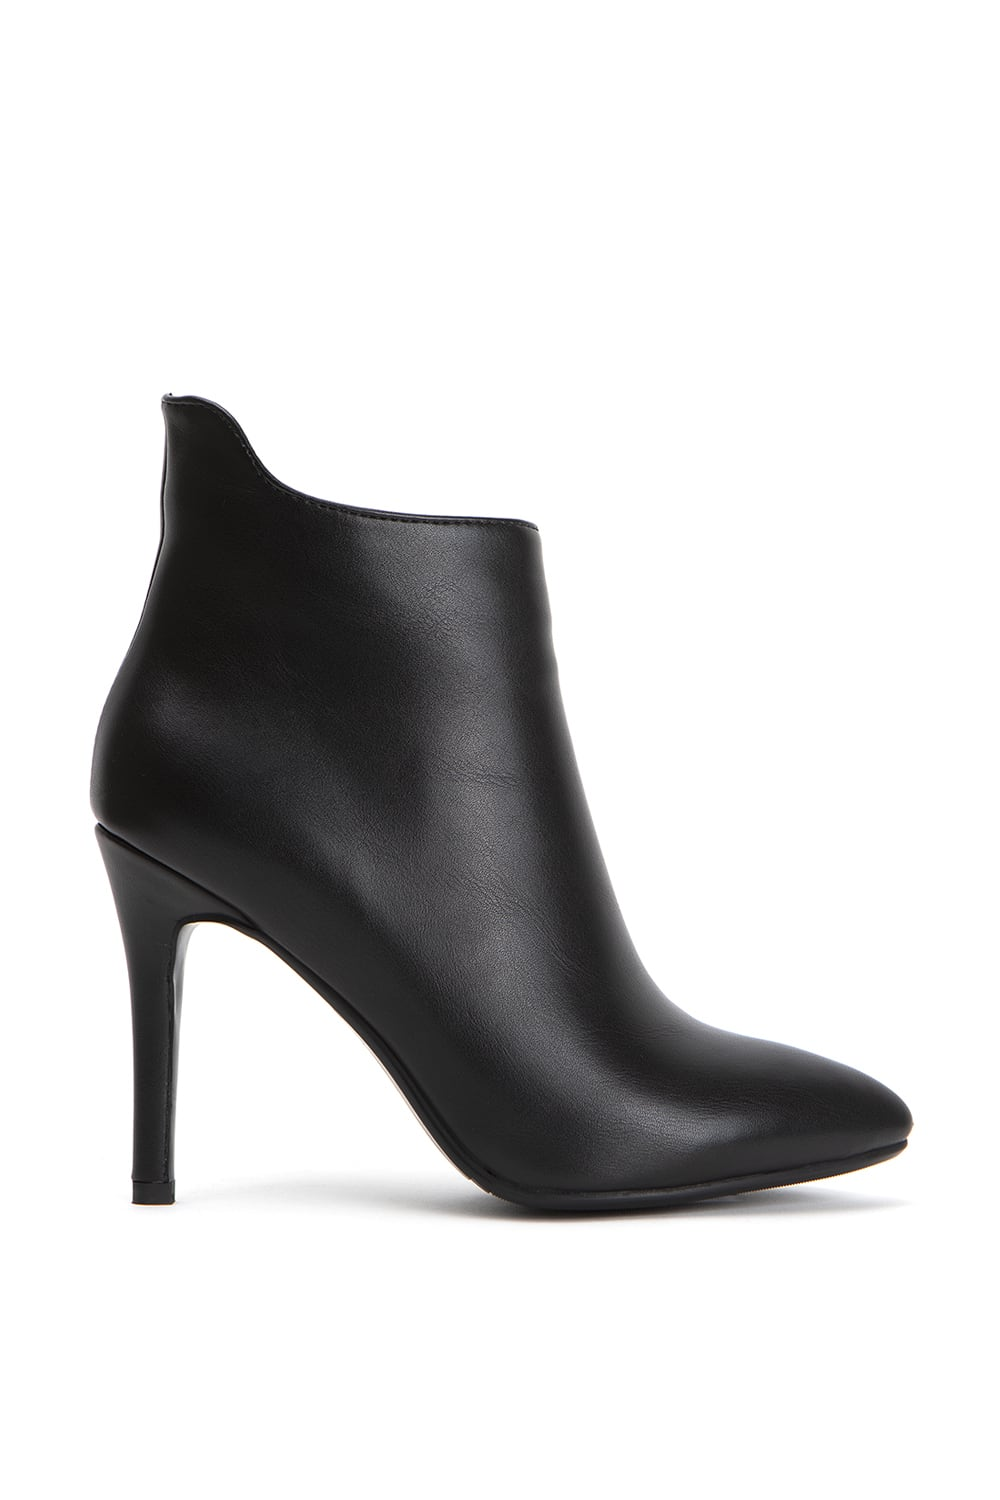 Delut High Black Leather